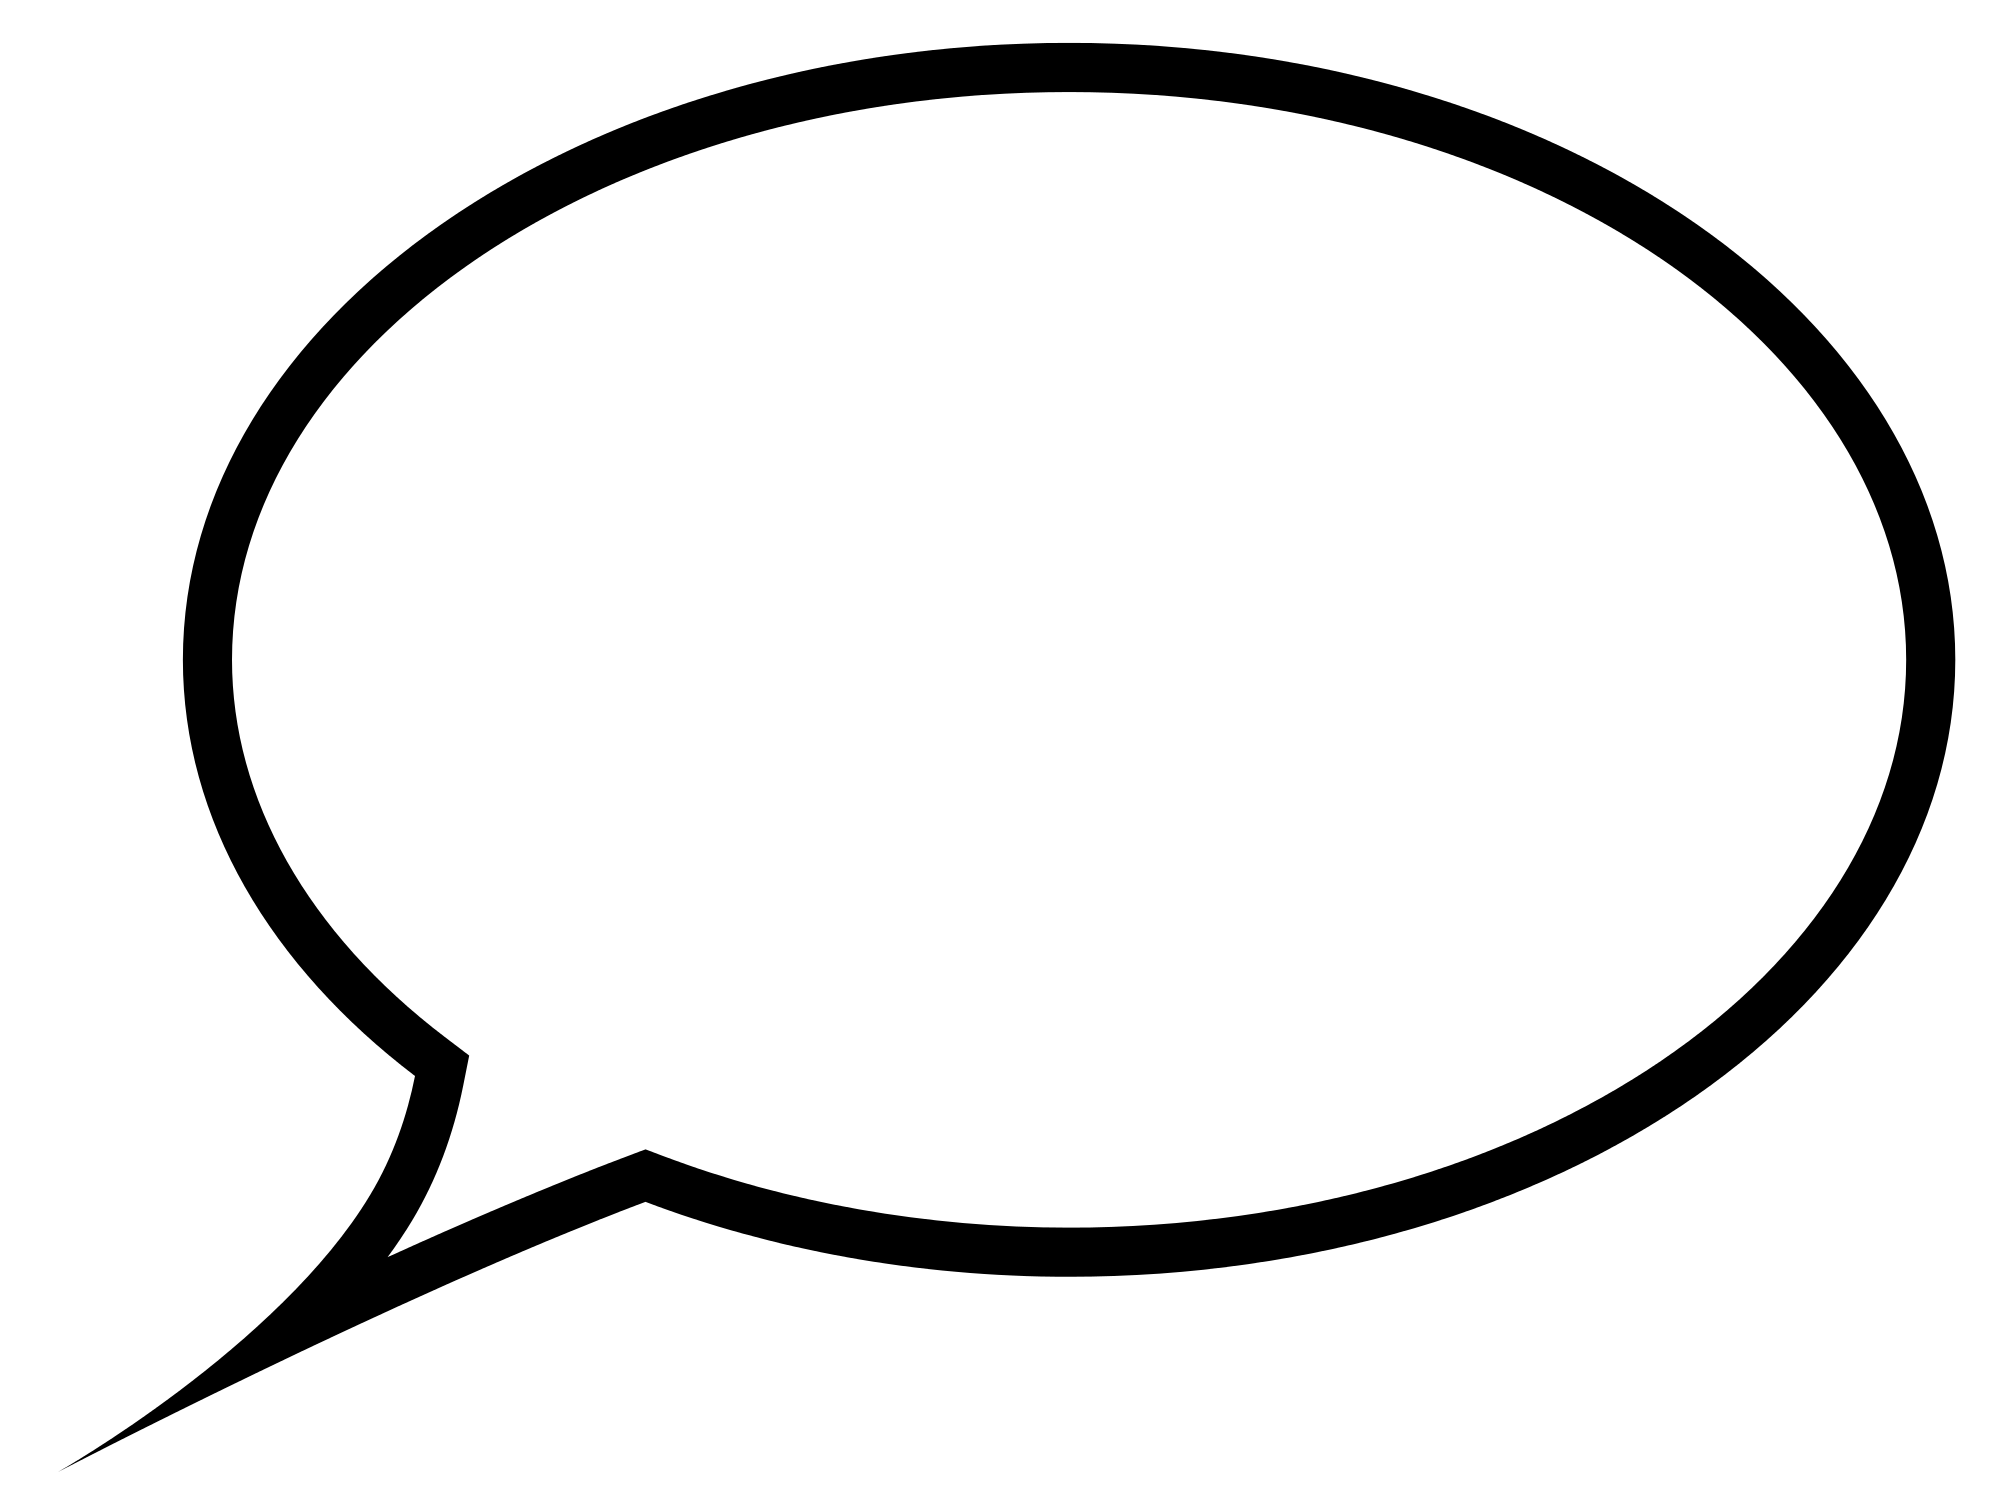 Transparent png stickpng download. Conversation clipart speech bubble